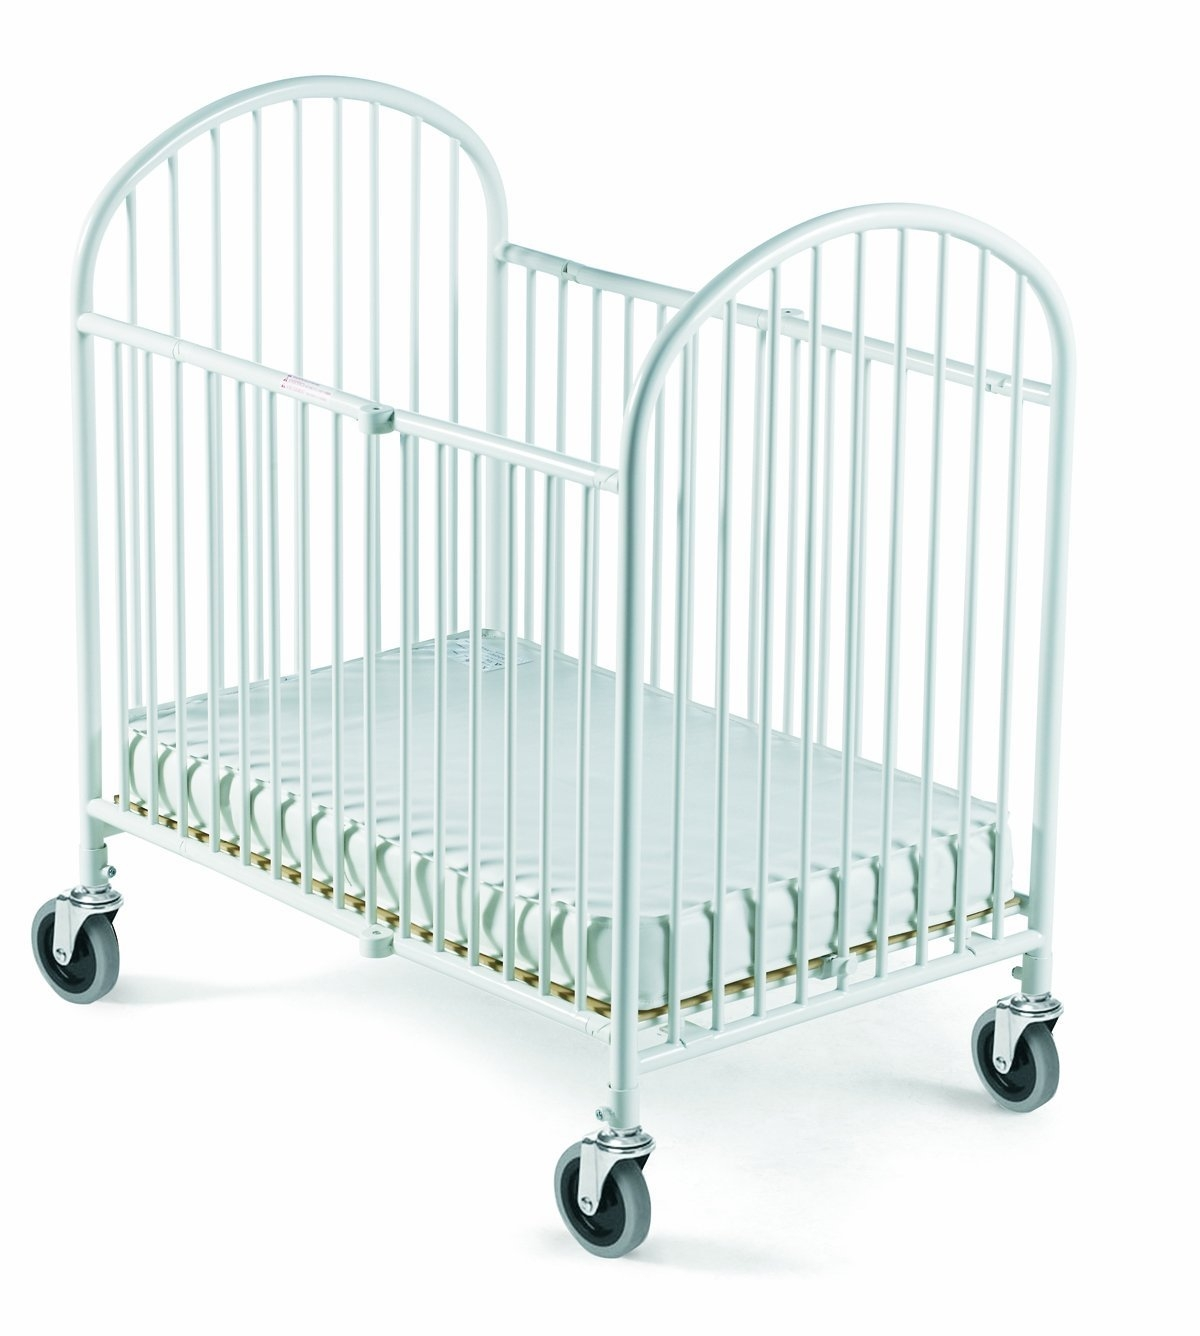 Foundations Pinnacle Folding Compact Steel Crib with Innerspring Mattress, White